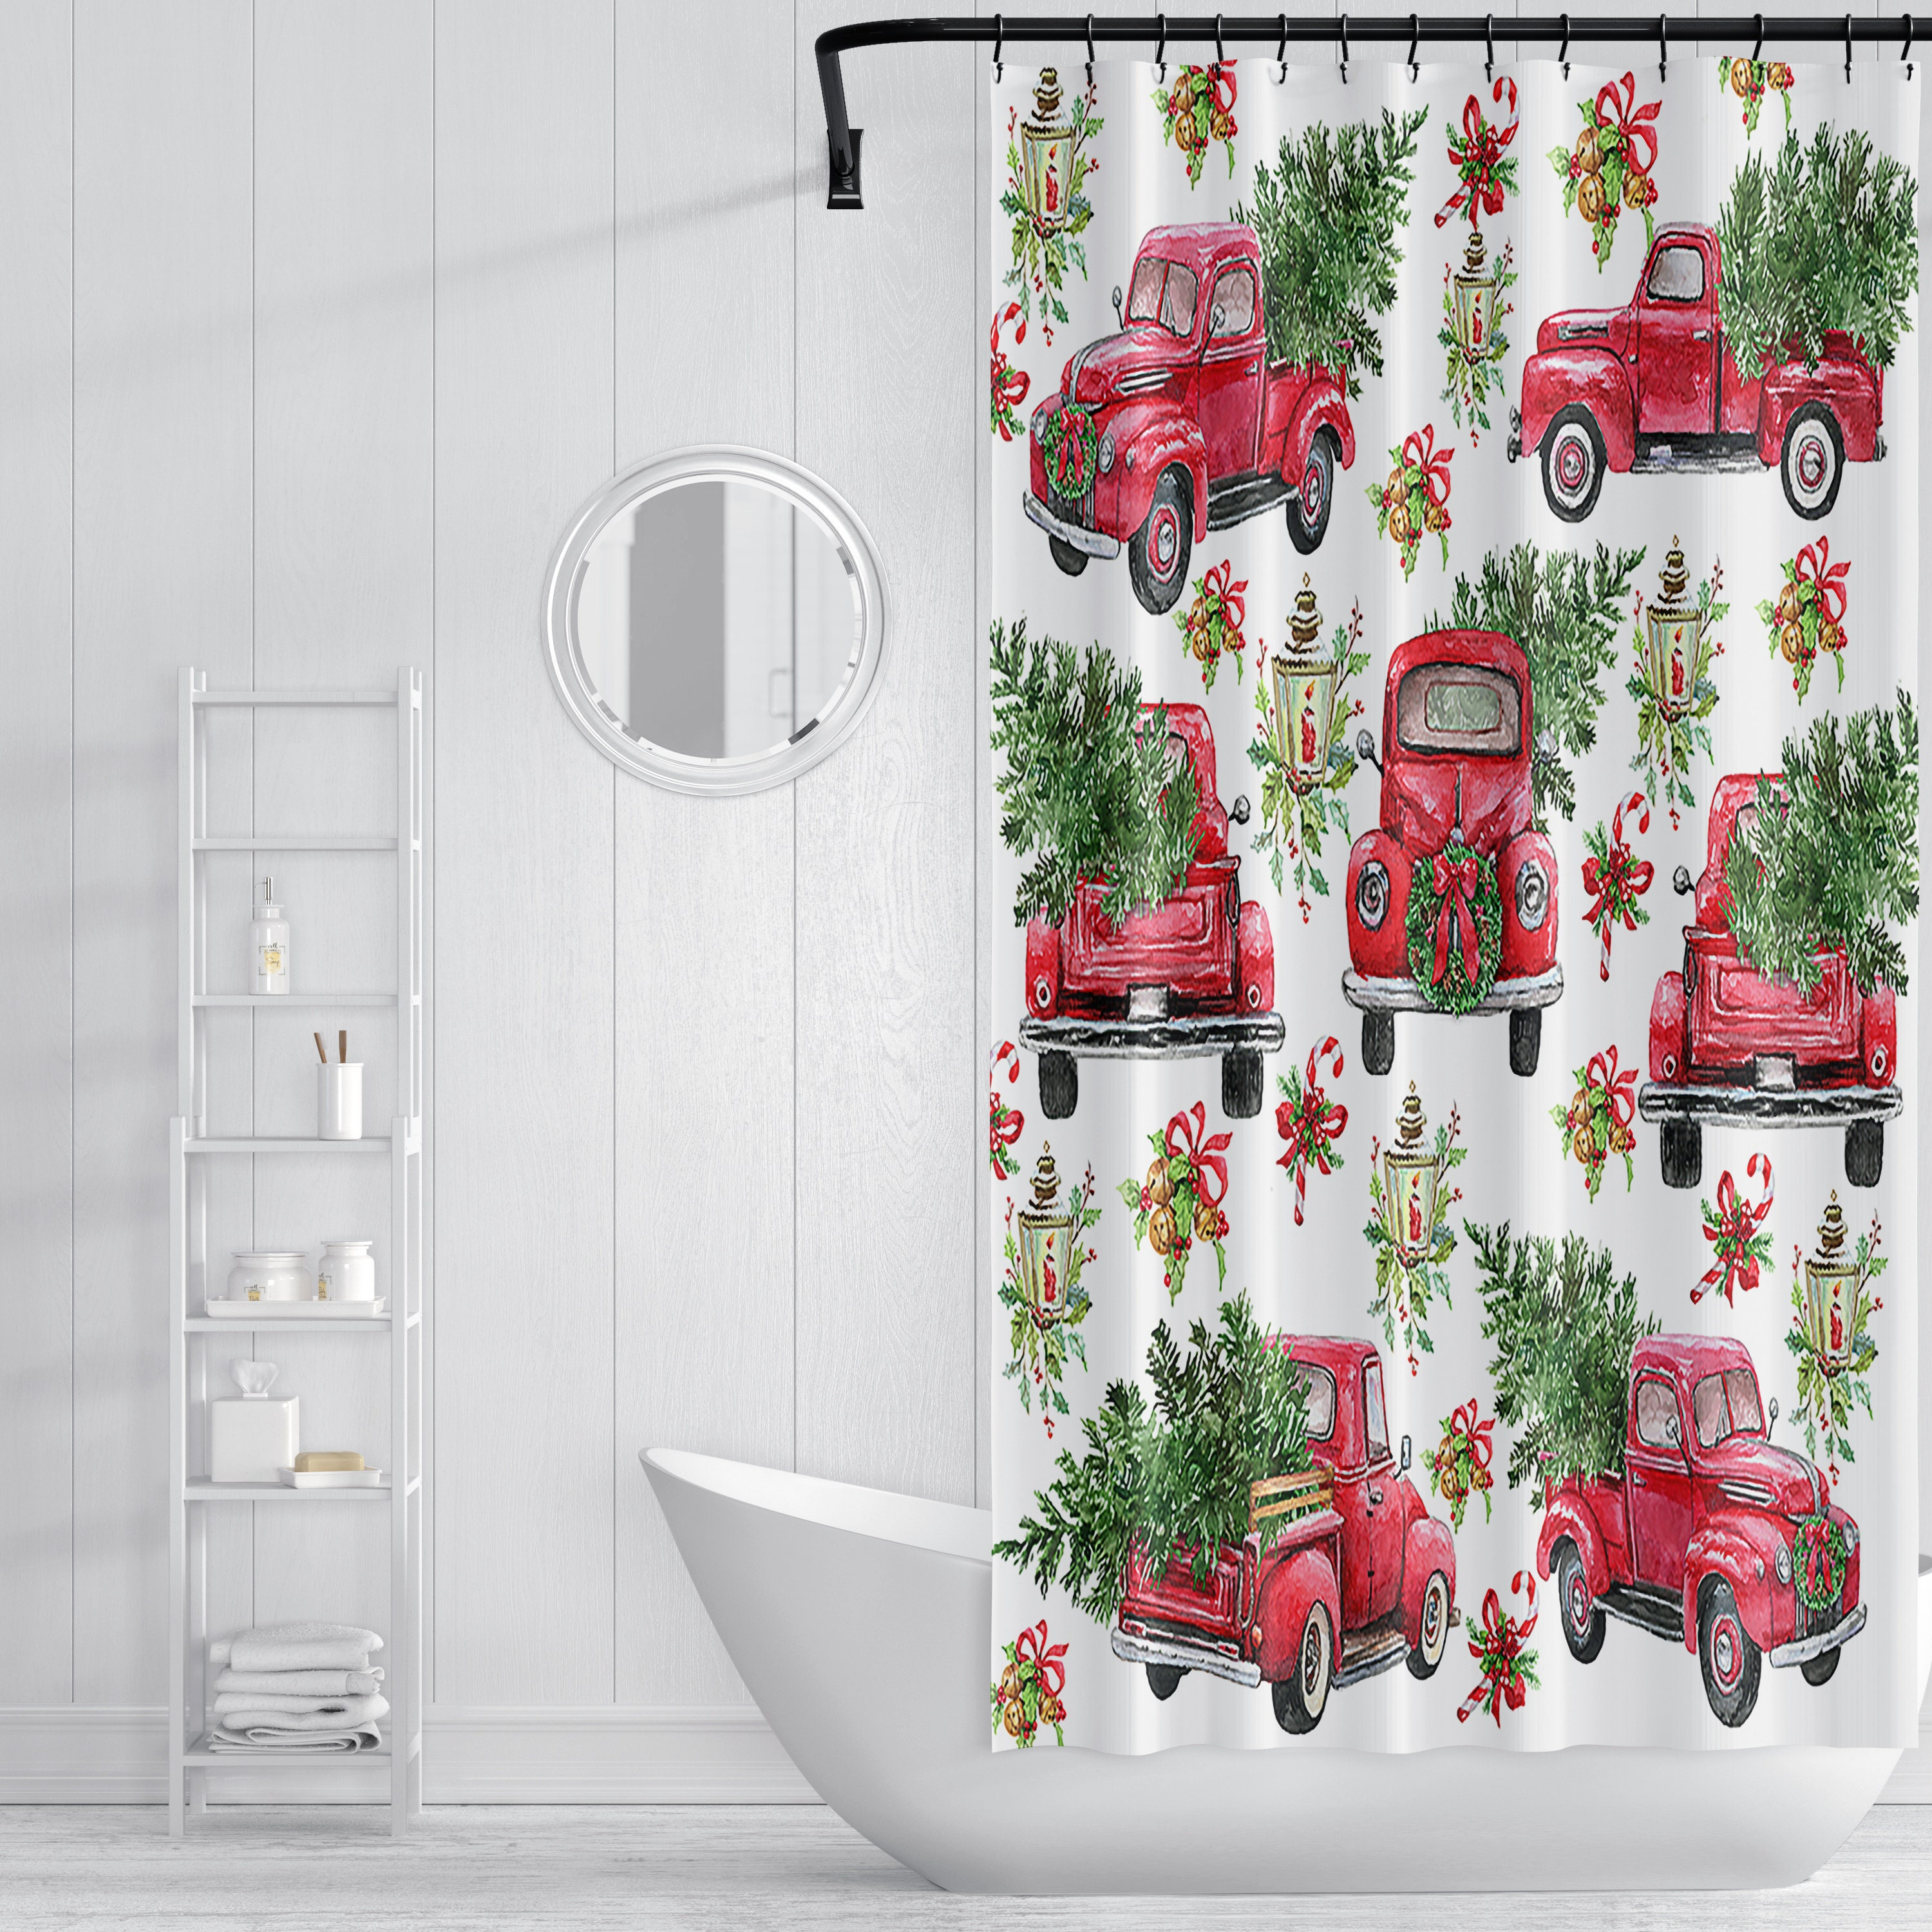 Red Truck Christmas Shower Curtain, Holiday Shower Curtain